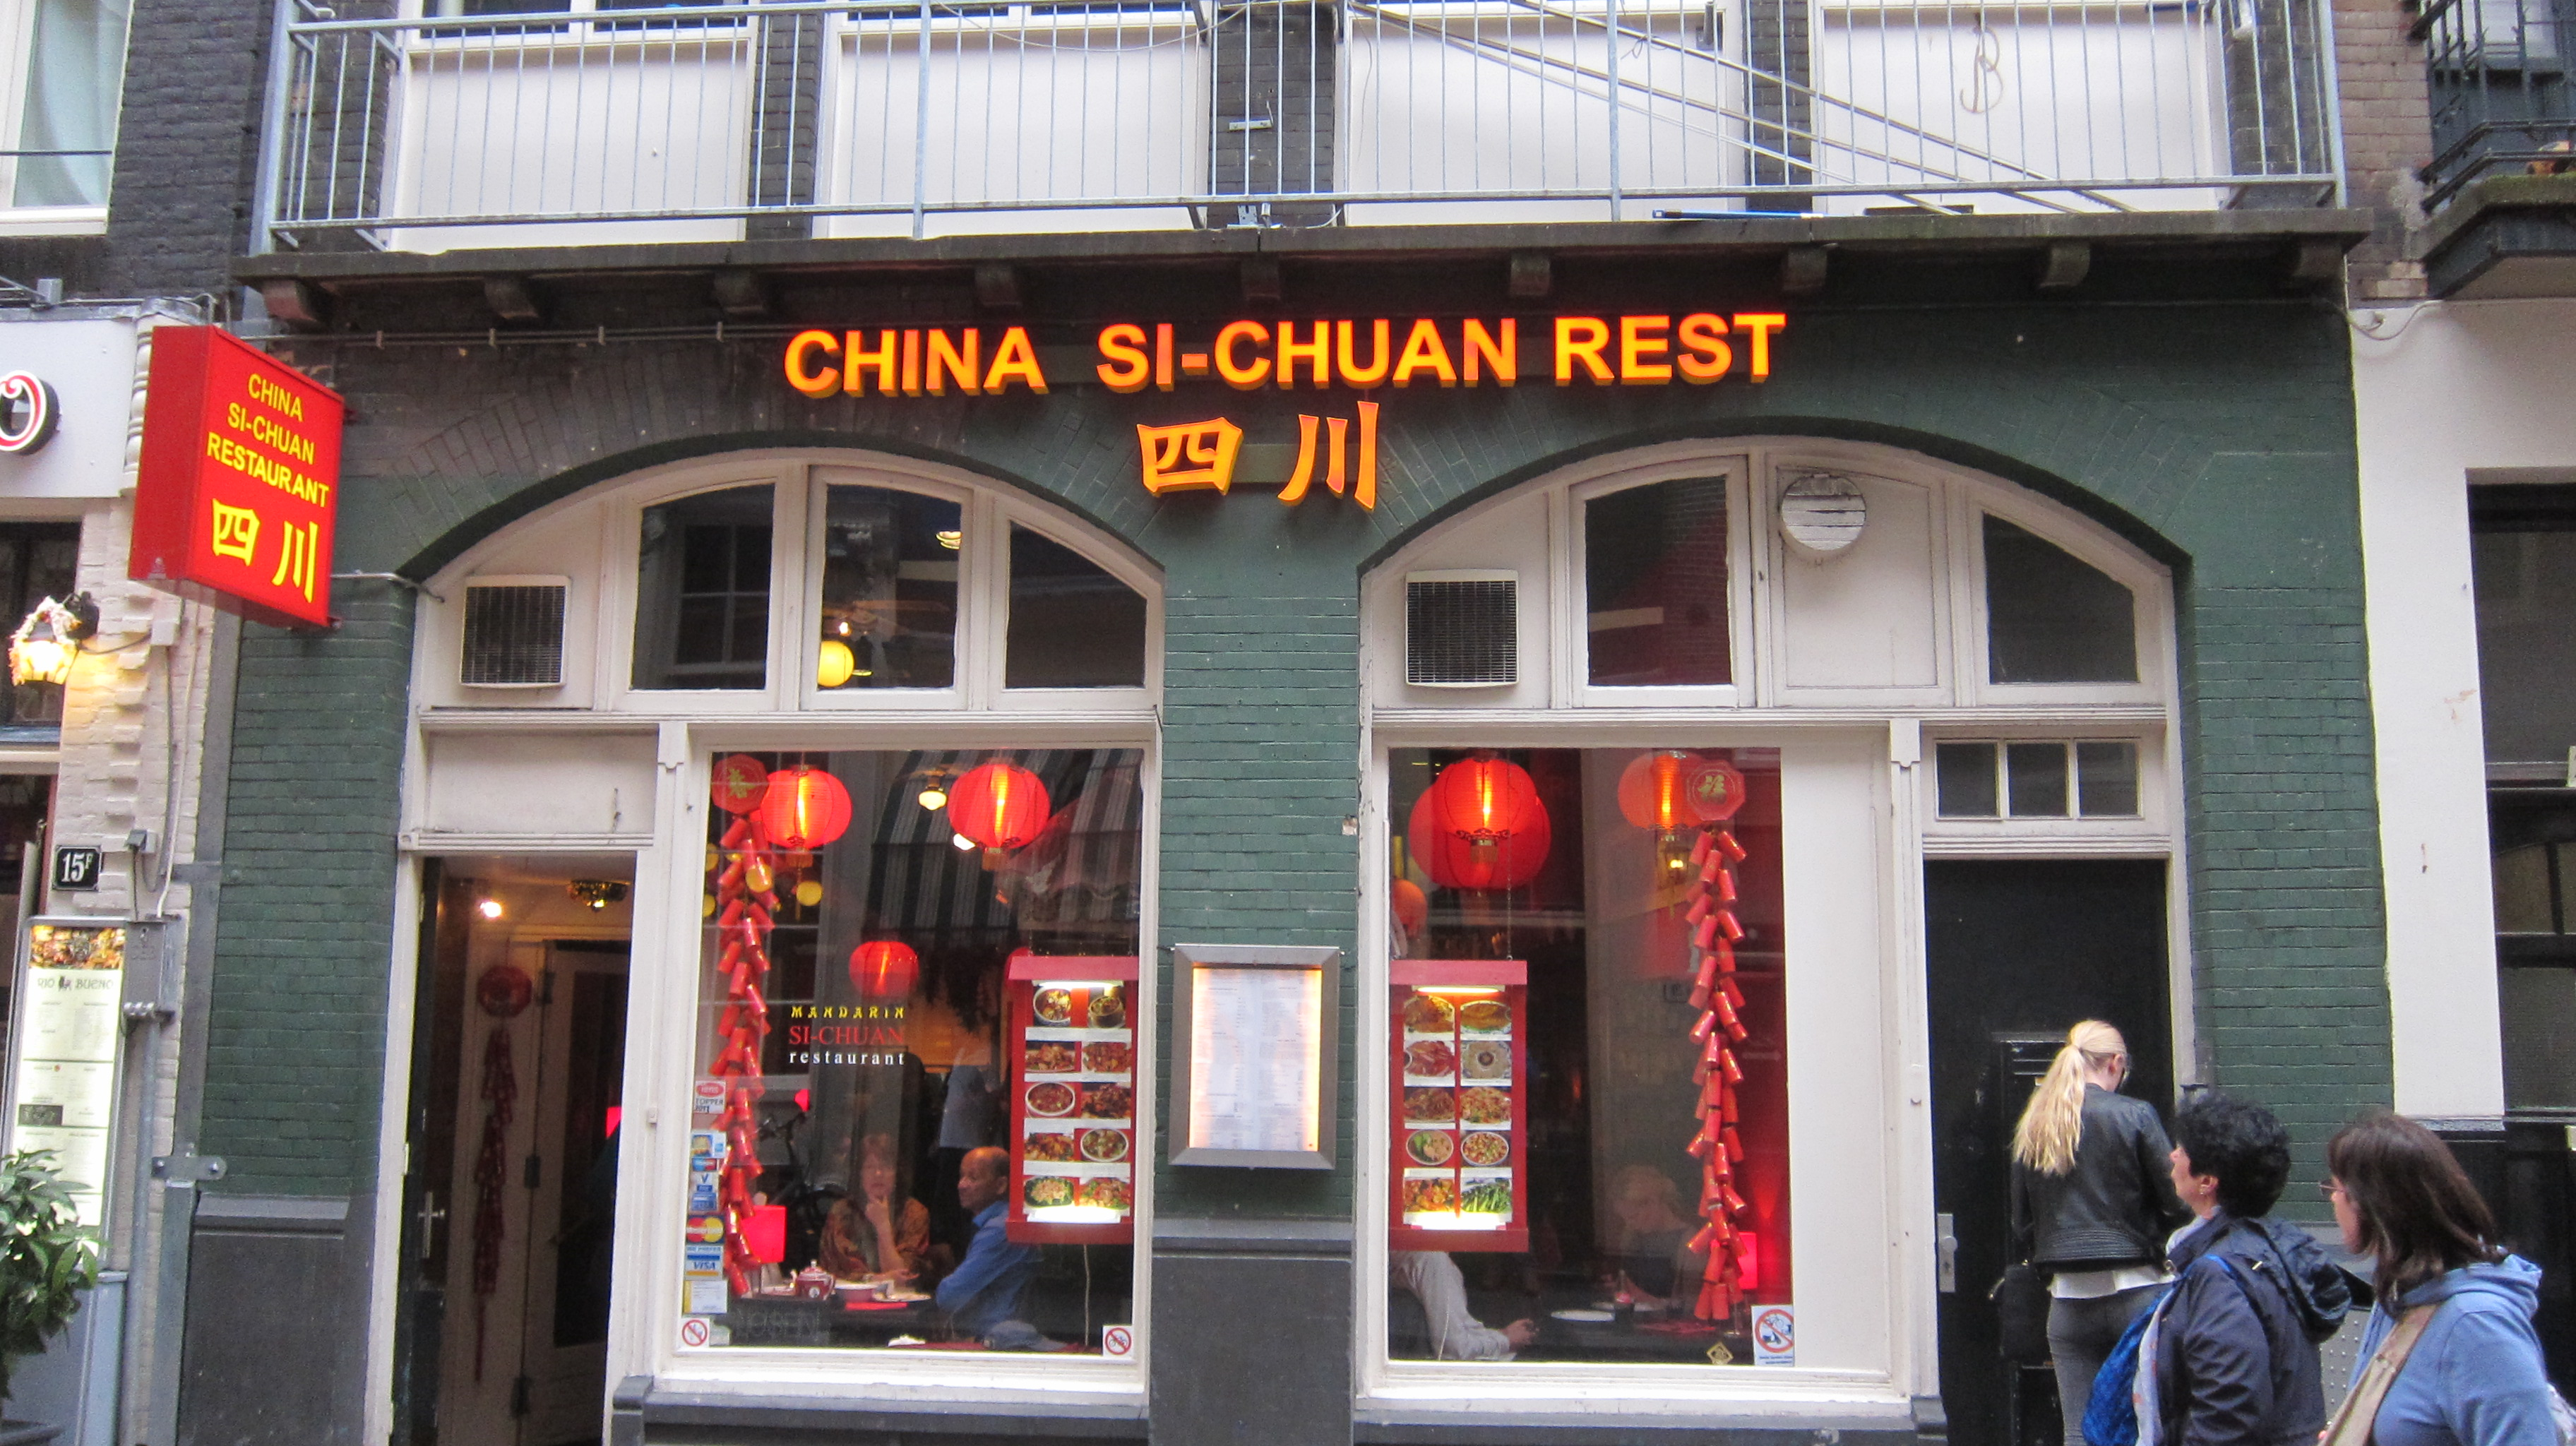 <!--:de-->China Si-Chuan Restaurant – Amsterdam<!--:--><!--:en-->China Si-Chuan Restaurant – Amsterdam<!--:-->